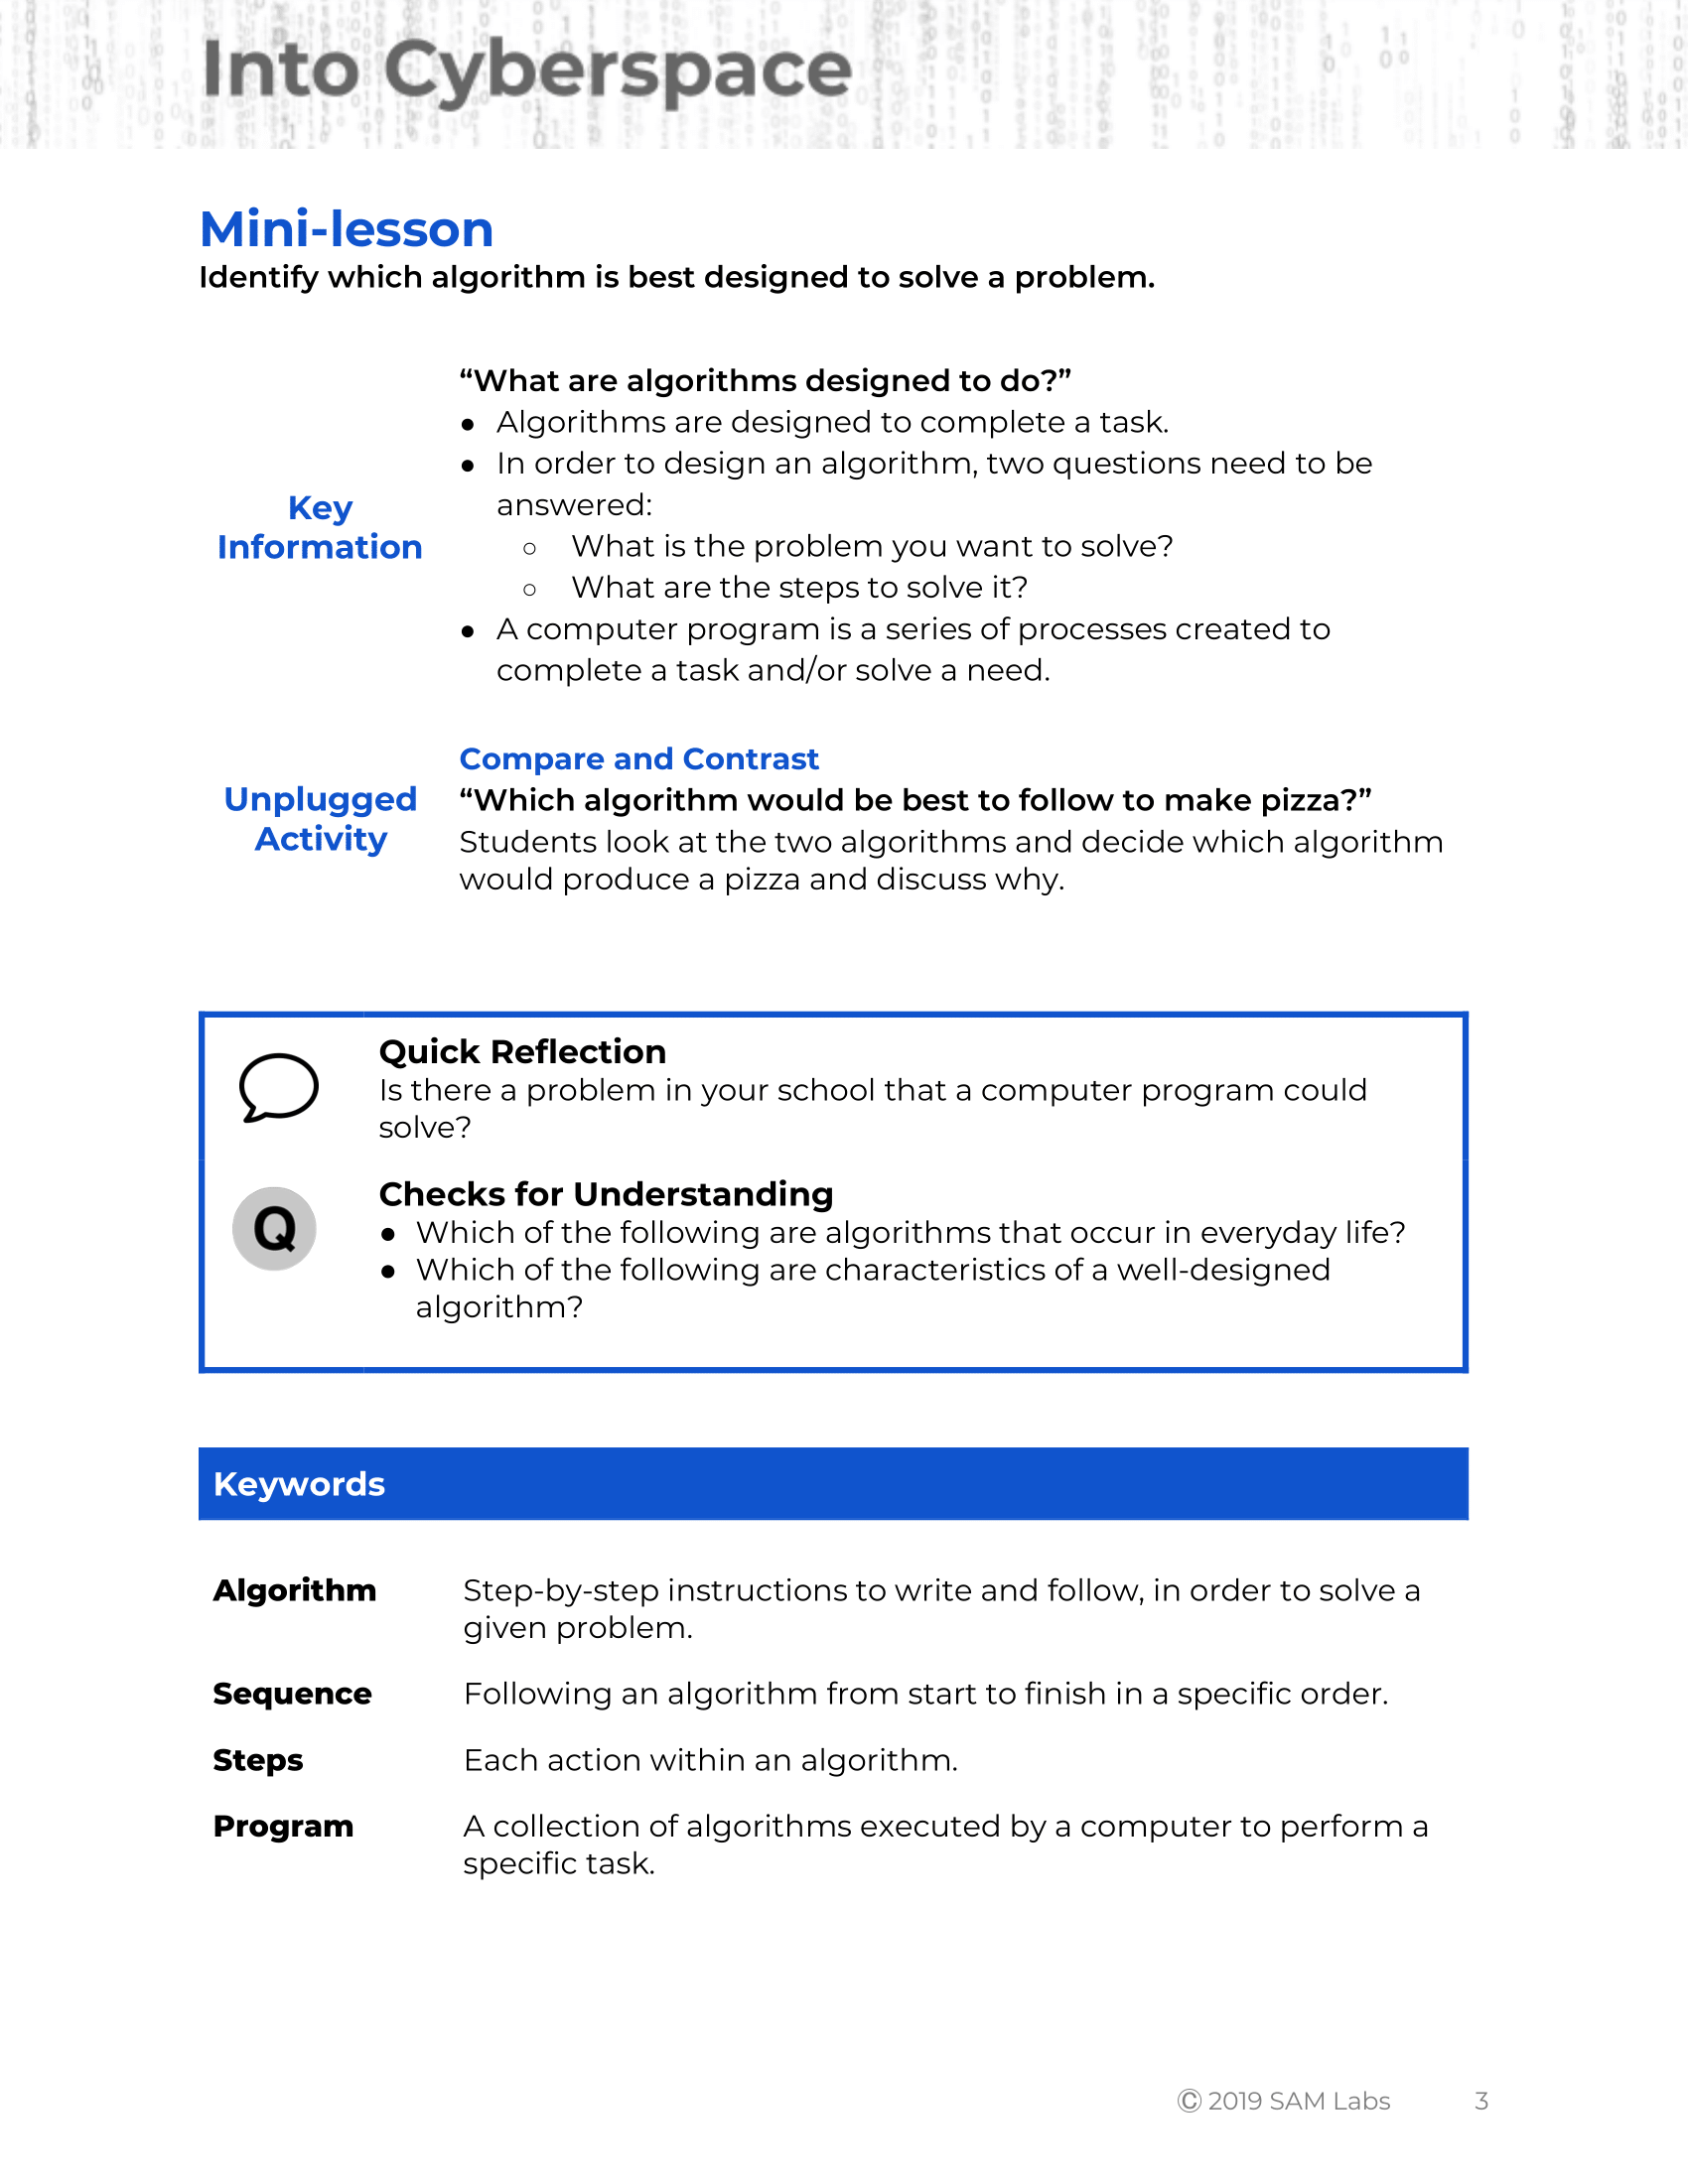 LEARN_TO_CODE_Grade_4_Lesson_1_Into_Cyberspace_Lesson_Plan-03.png